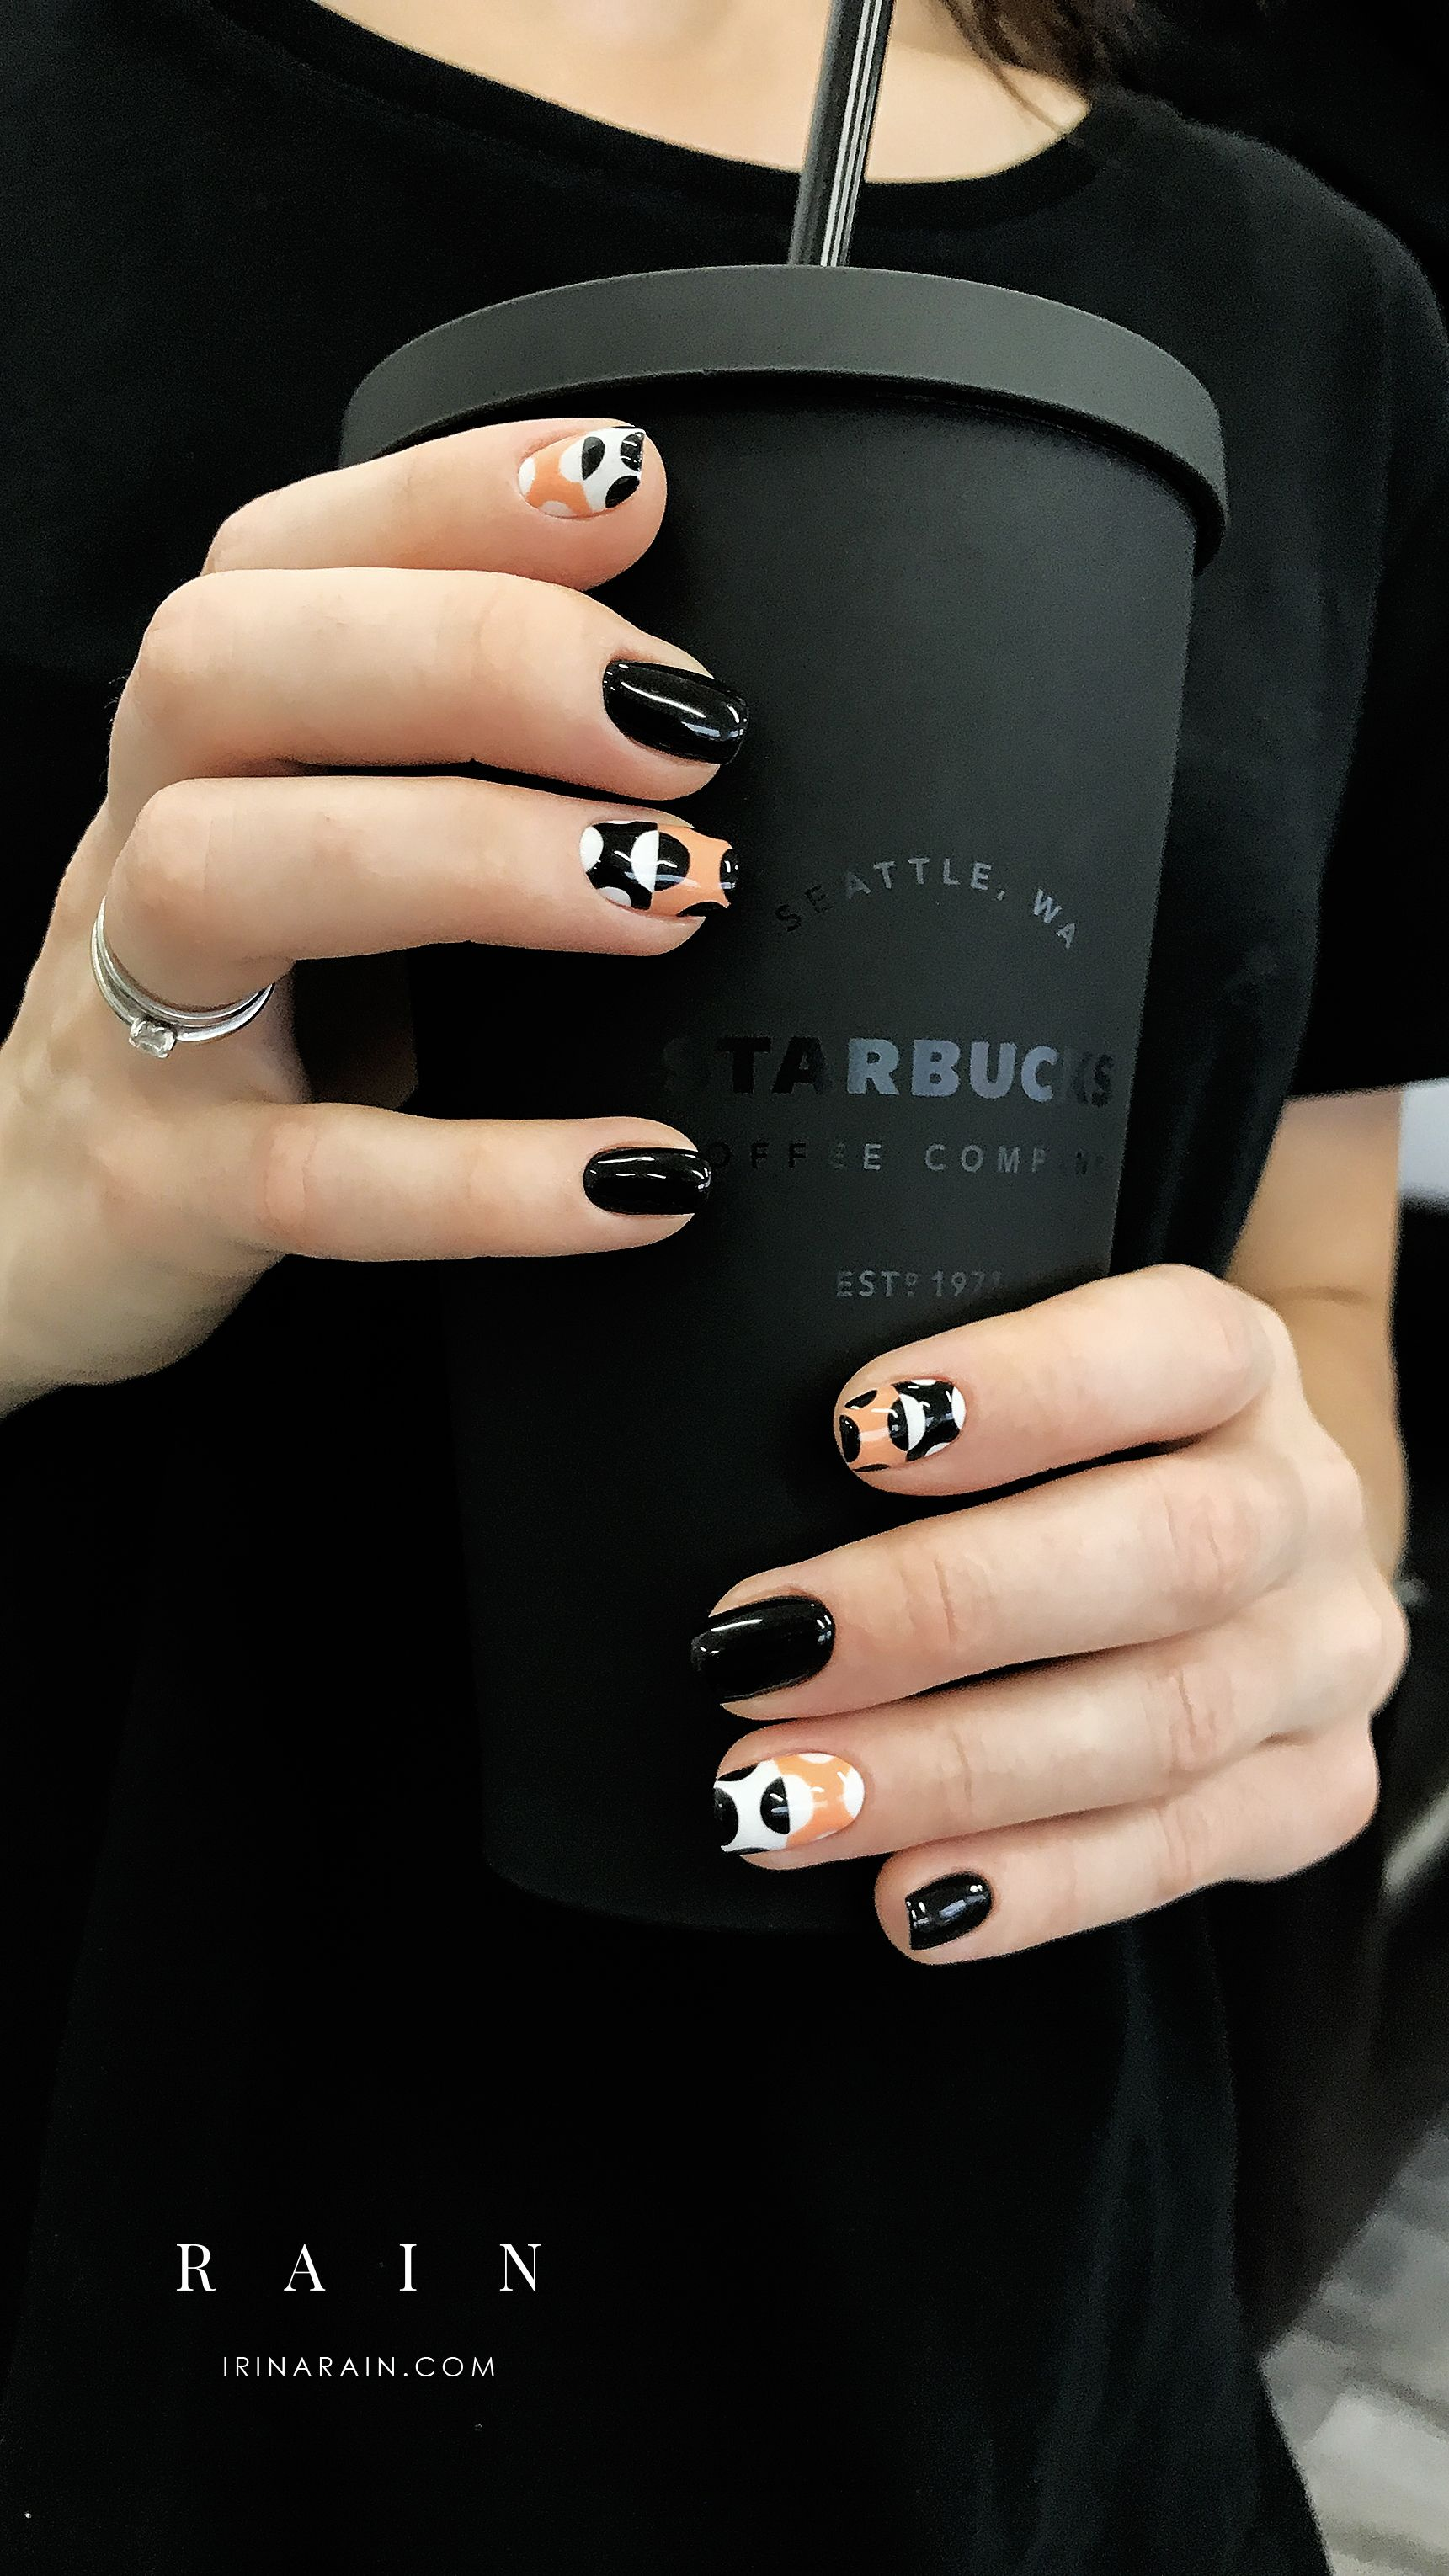 These Nails Are To Die For Nail Art Ideas Ideas De Unas Acrylic And Gel Nail Manicure Idea Fall Nail Art Trendy Nails Fall Manicure Manicure